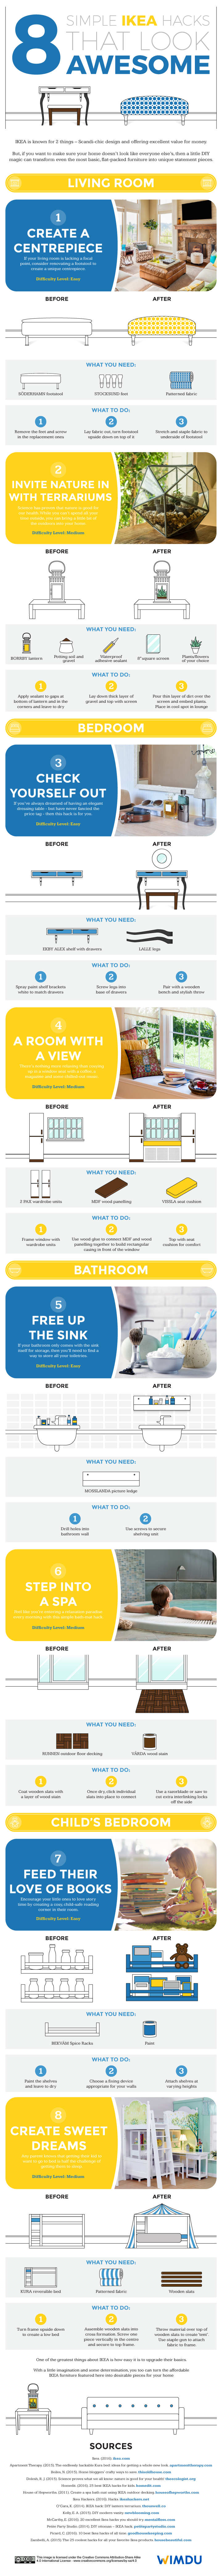 8 Simple IKEA Hacks That Look Awesome #Infographic